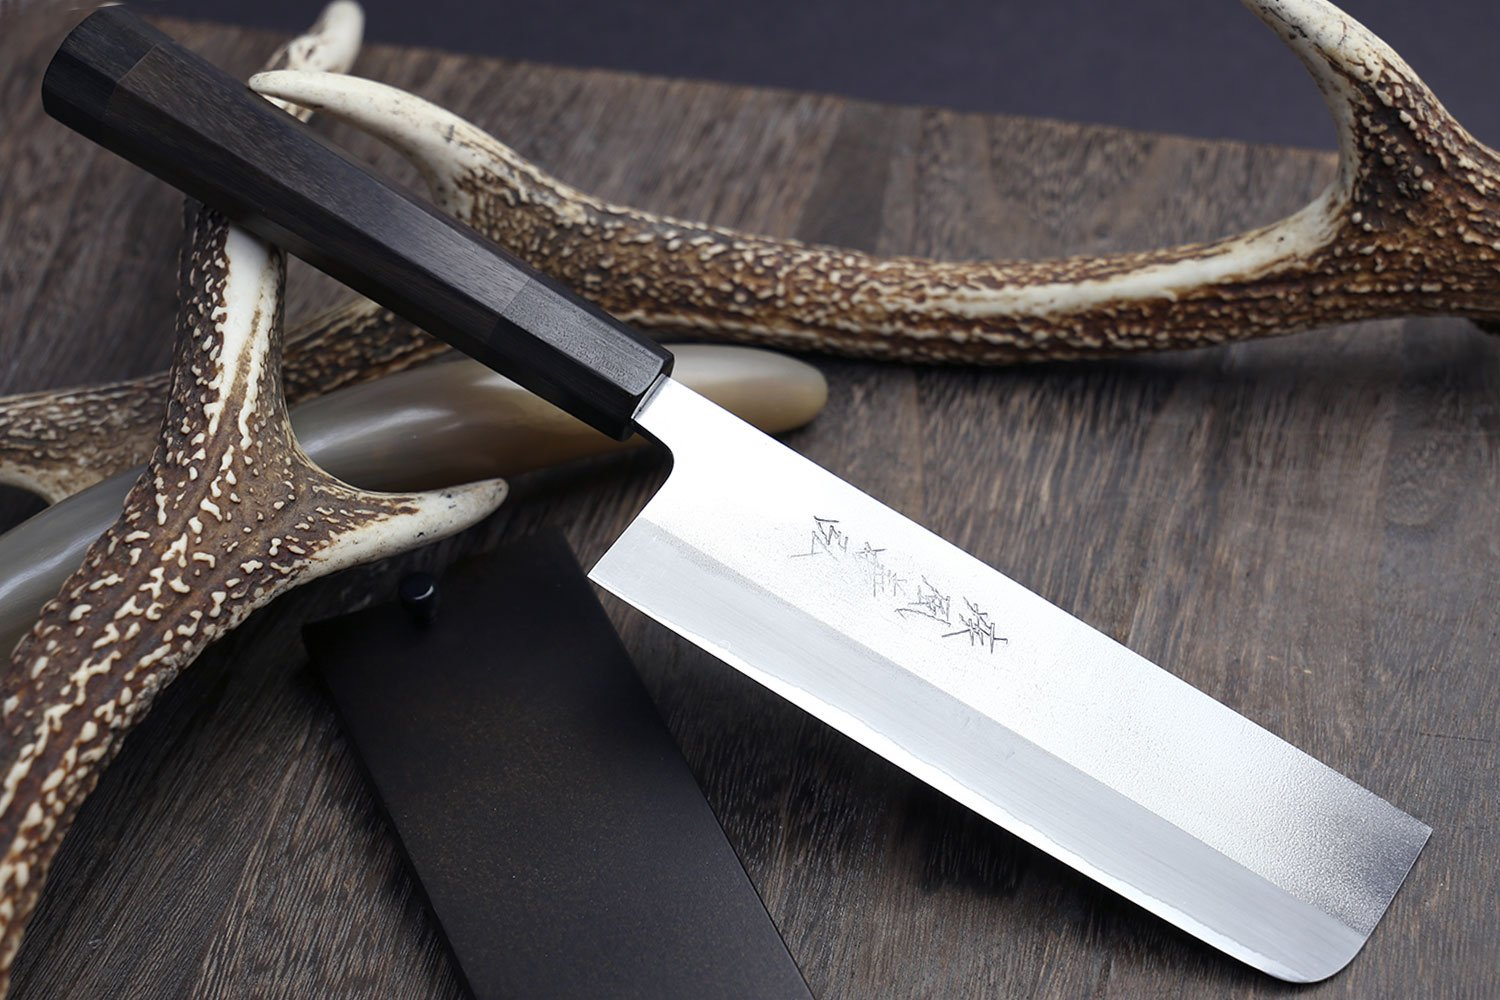 Yoshihiro Blue Steel Nakiri Vegetable Chefs Knife with Stainless Steel Cladding 6.5 IN Rosewood Handle with Nuri Saya